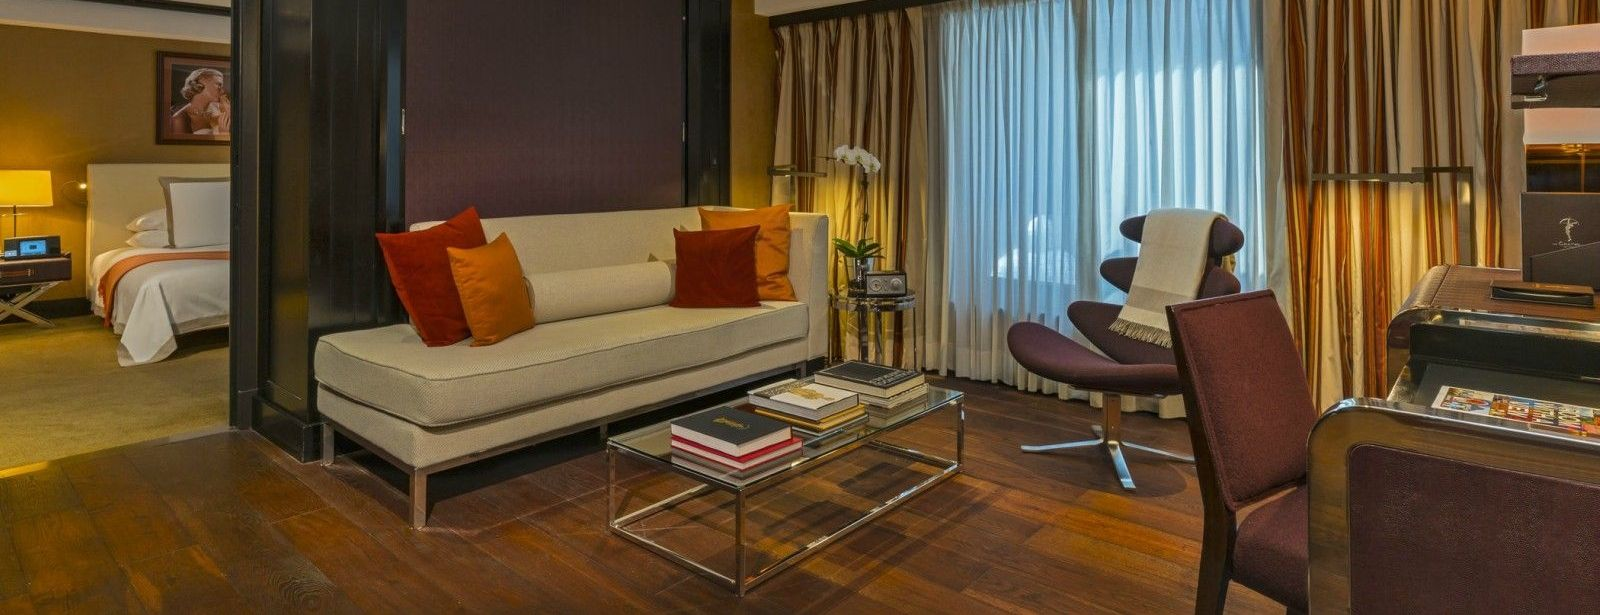 Hollywood Suite Living Room |  | The Chatwal, a Luxury Collection Hotel, New York City